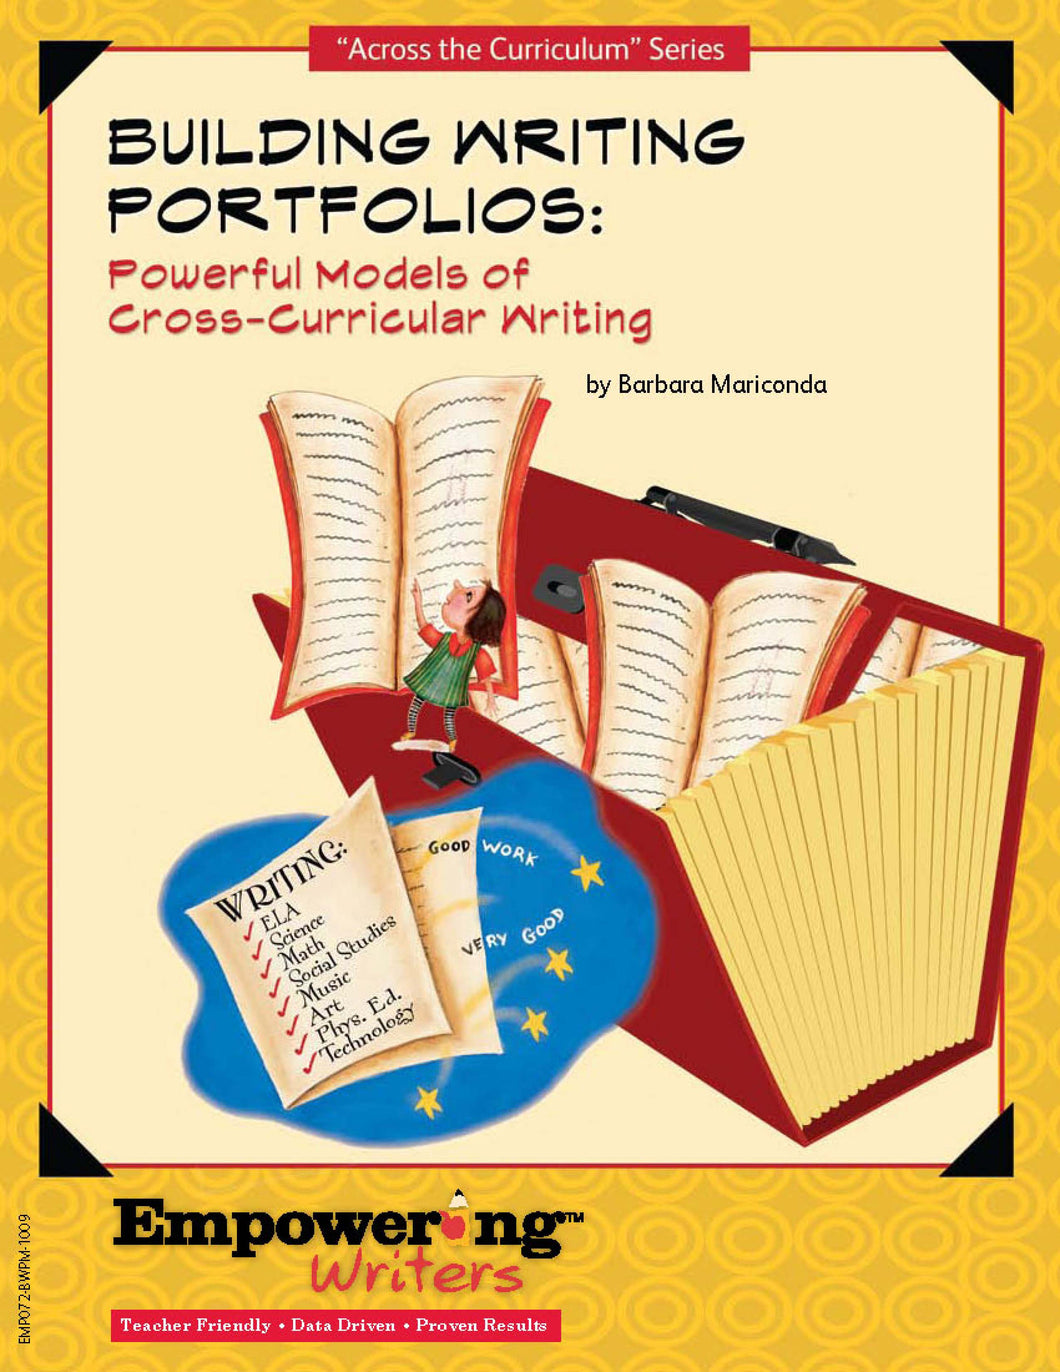 Building Writing Portfolios: Powerful Models of Cross-Curricular Writing - Canada